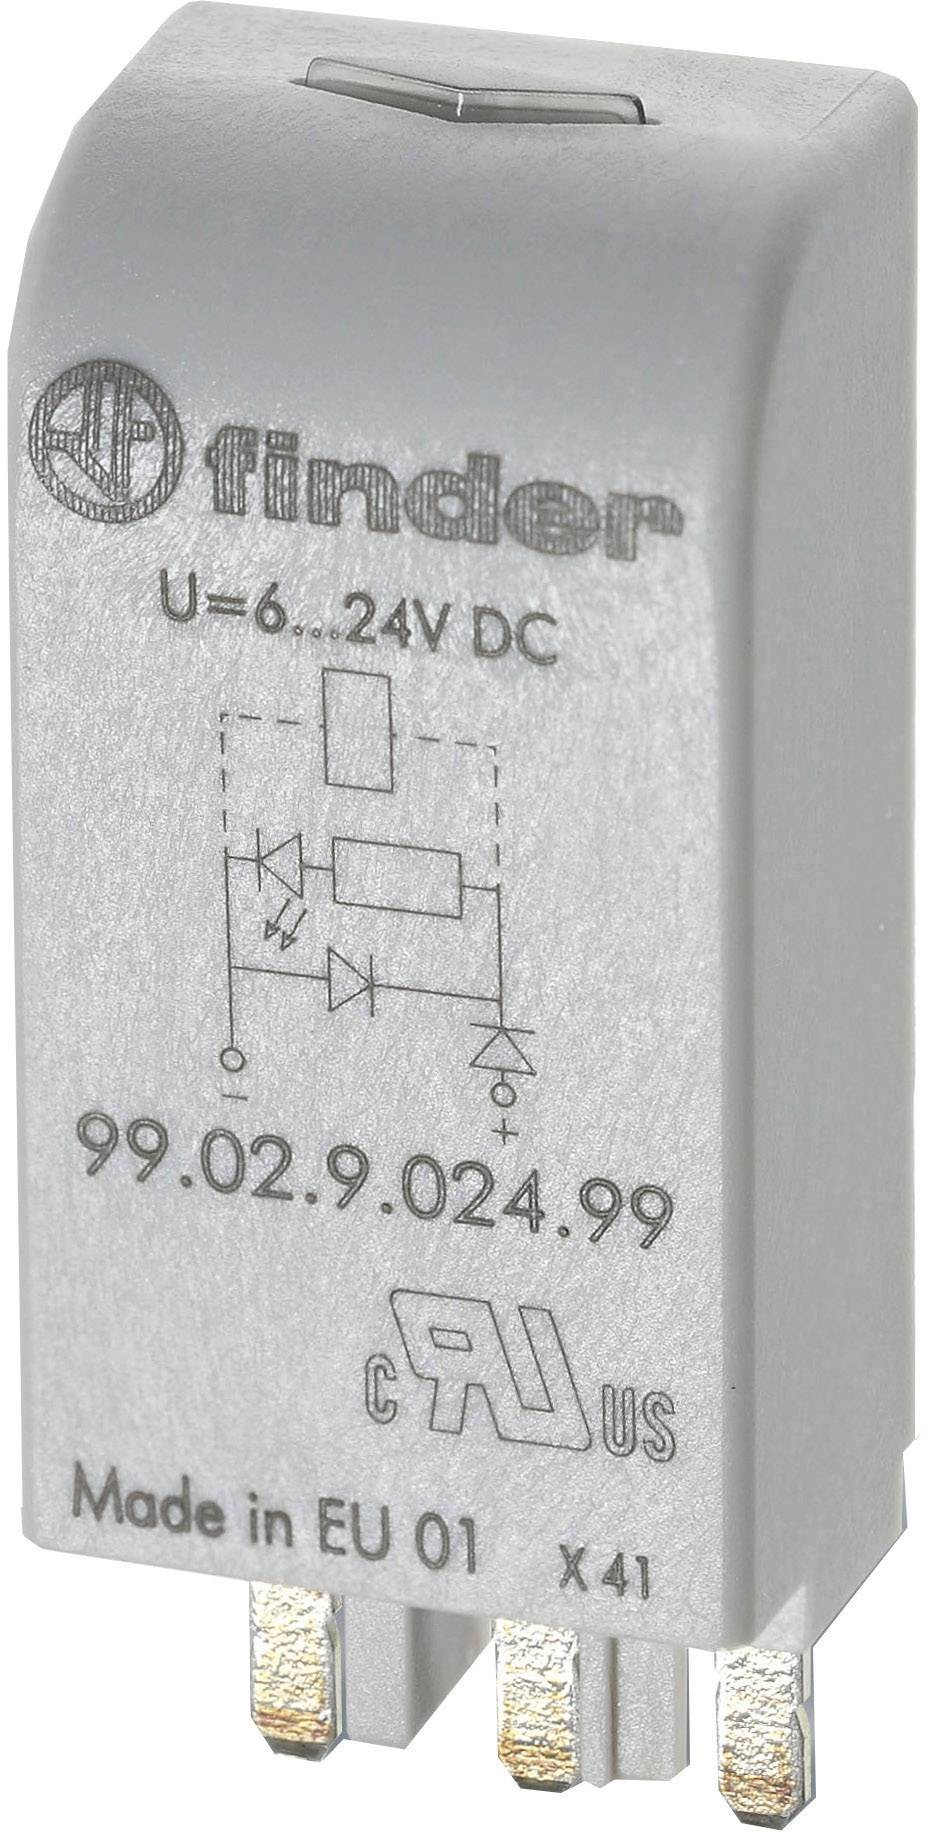 Finder EMV-Modul 99.02.9.024.99 LED+Freilaufdiode